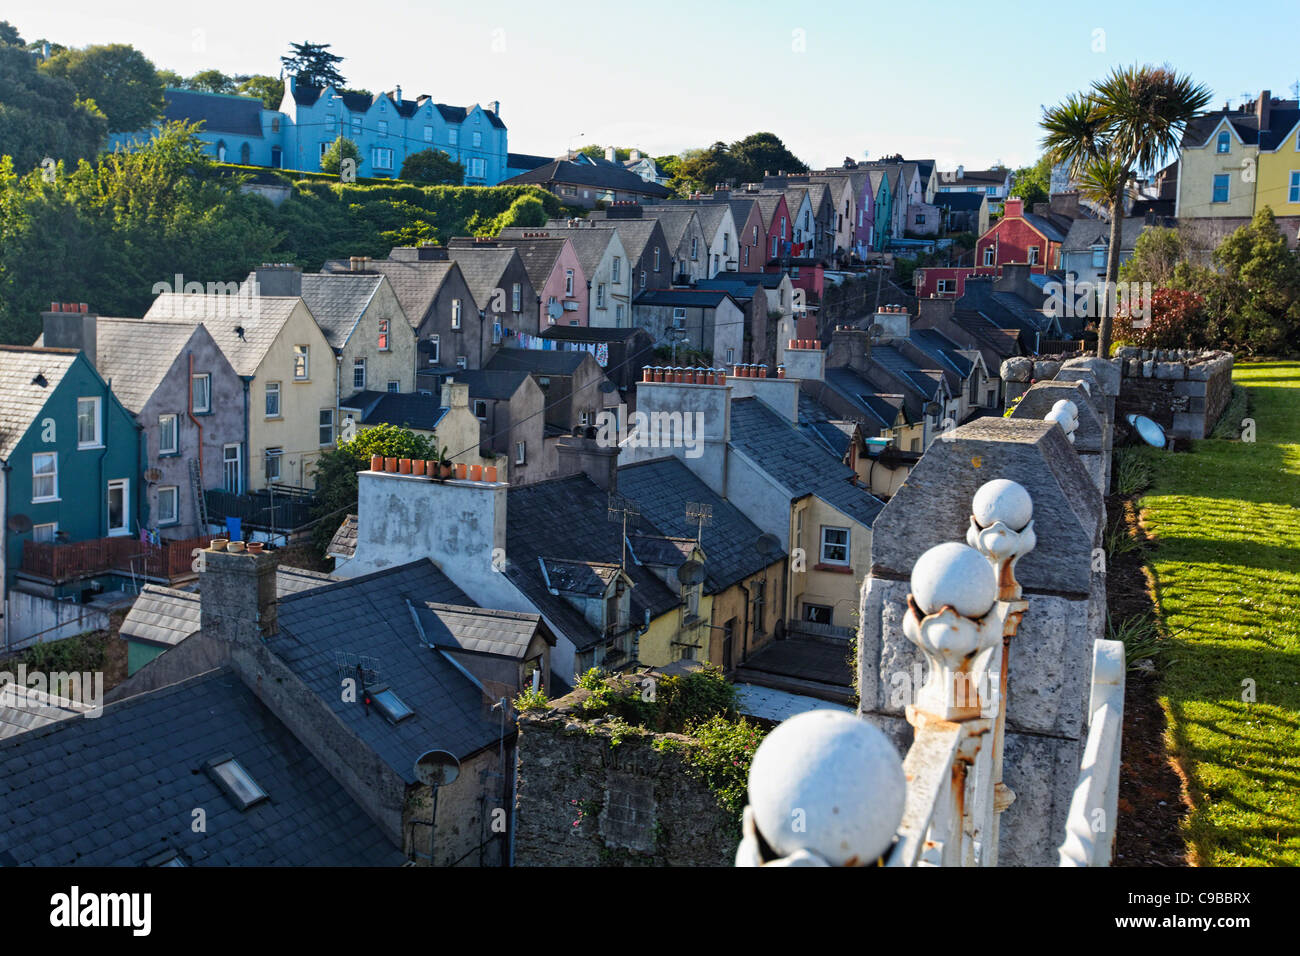 High Angle View of Colorful Row Houses in Cobh, County Cork, Munster, Republic of Ireland - Stock Image